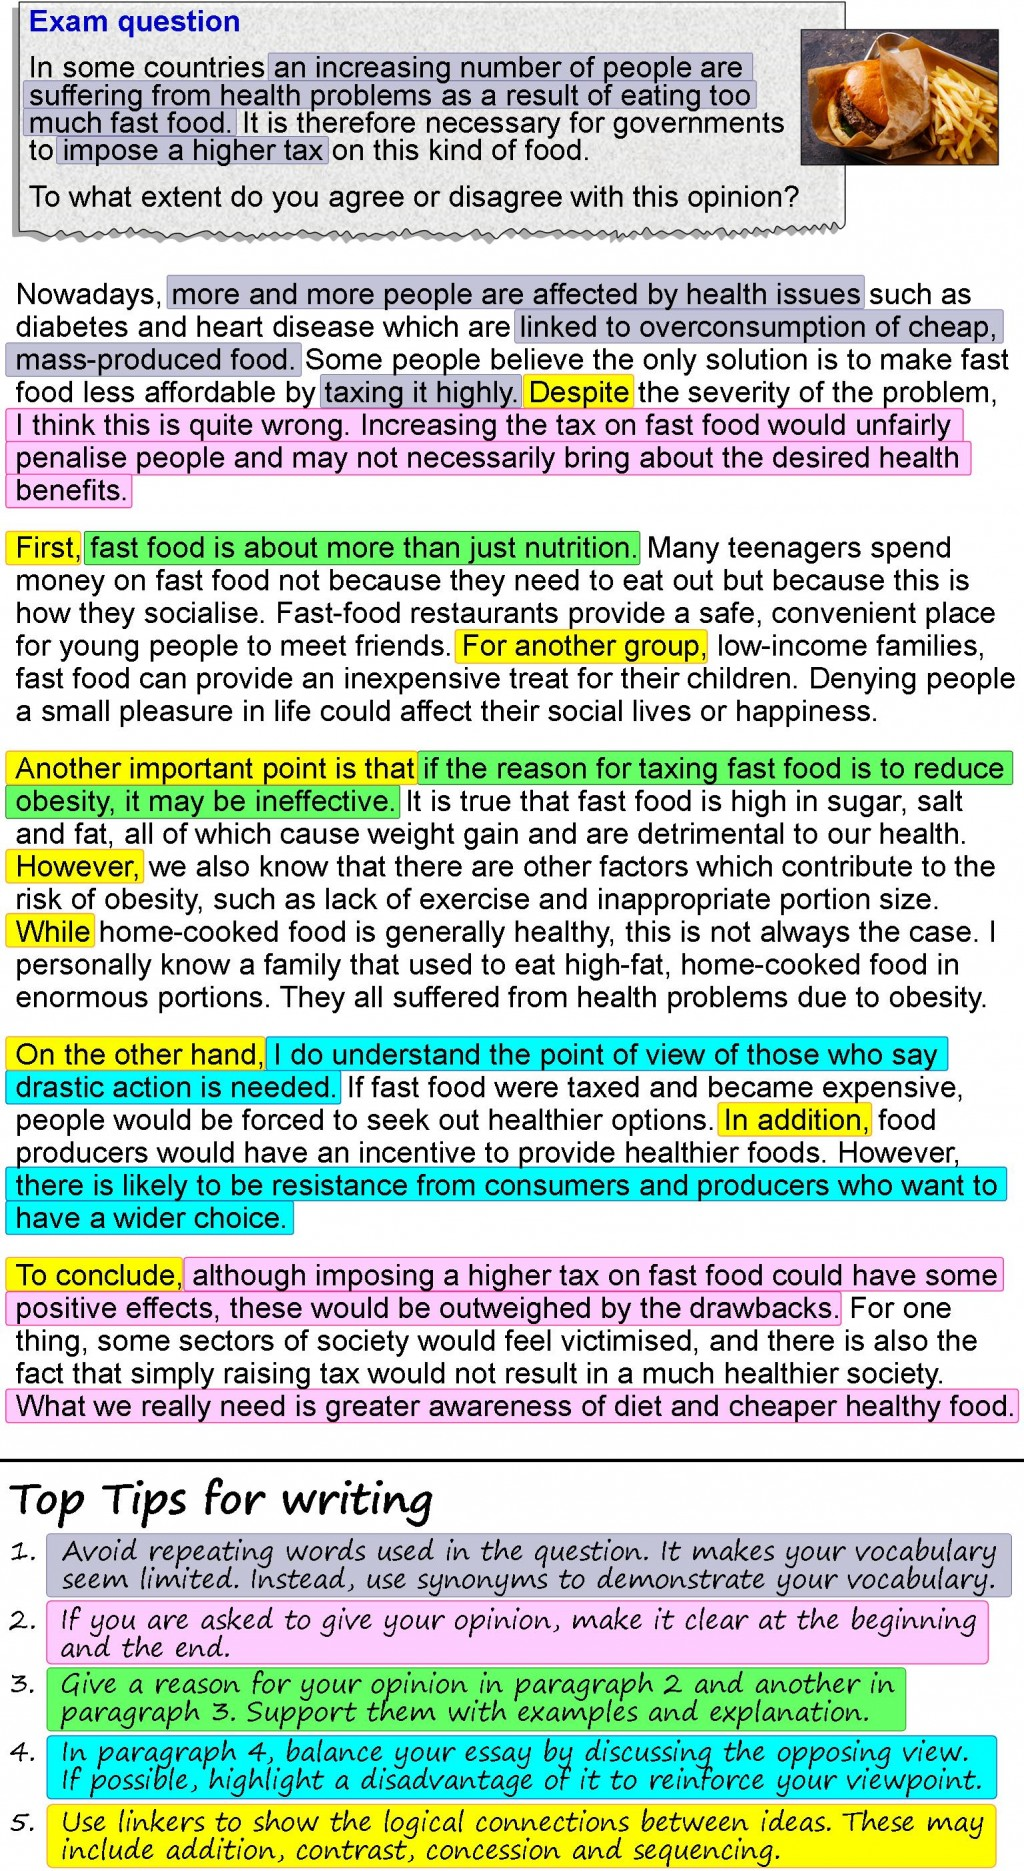 001 Opinion Essay About Fast Food Example An 4 Unbelievable Is A Good Alternative To Cooking For Yourself British Council Large